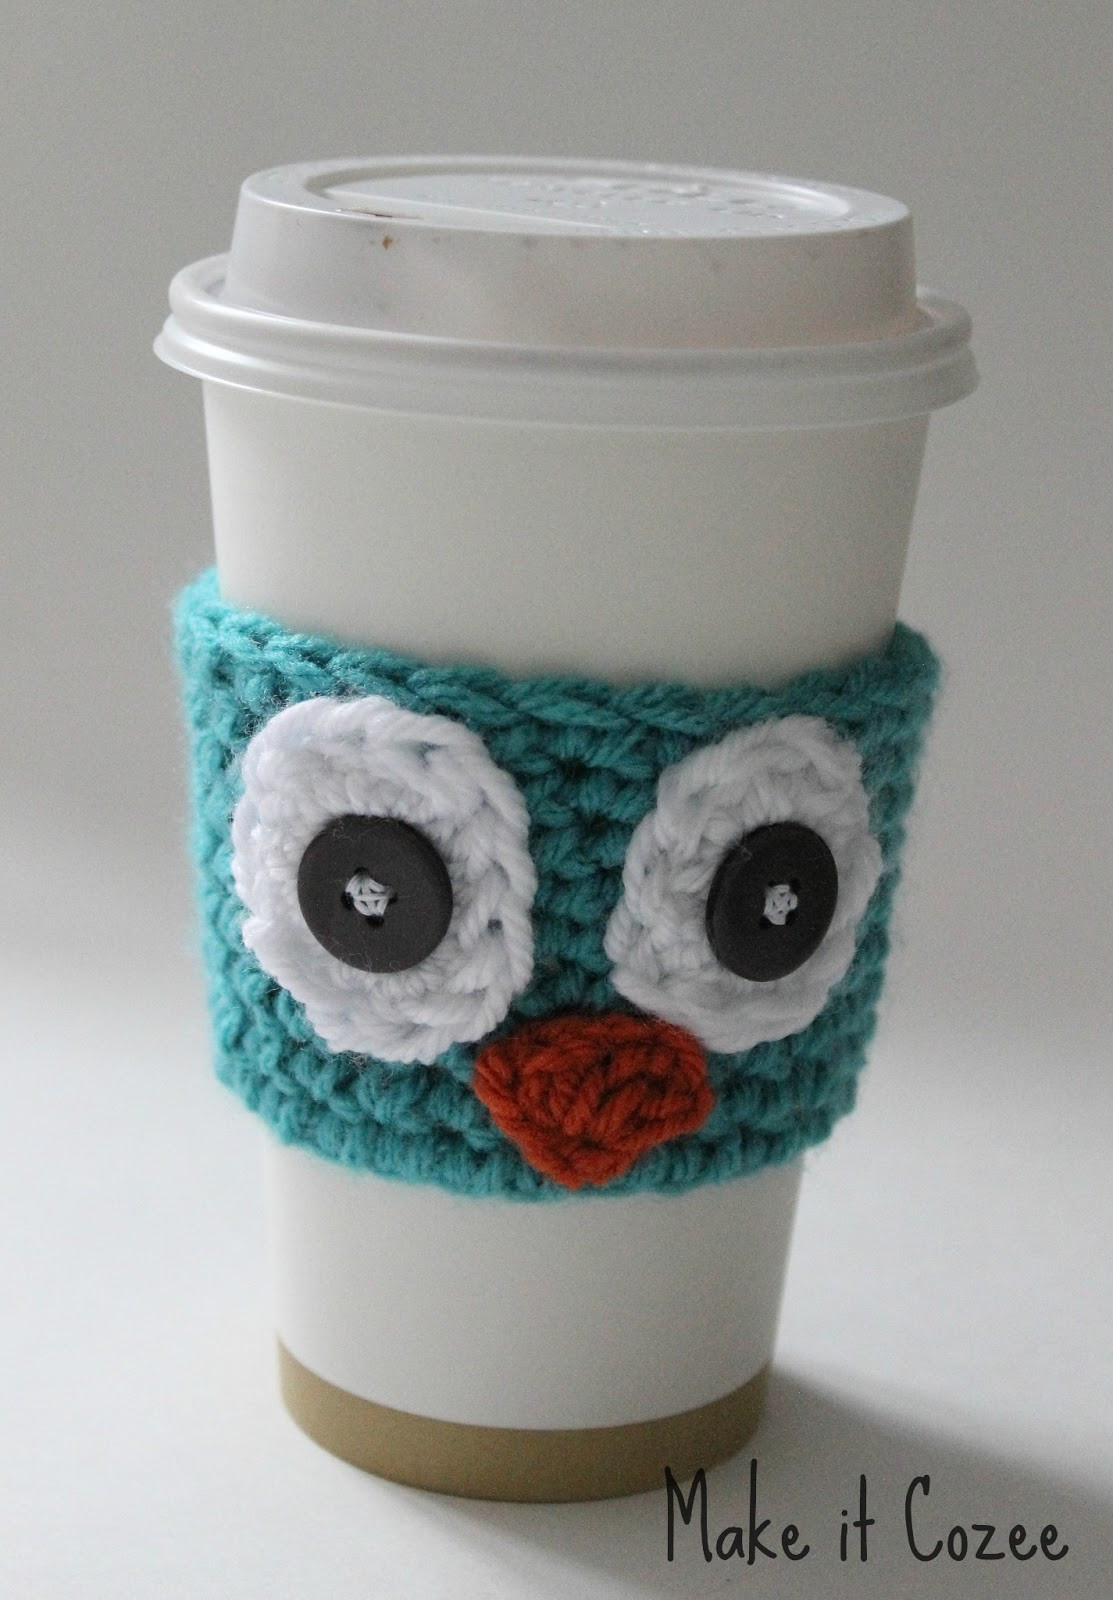 Crochet Coffee Cup Cozy Inspirational Make It Cozee Crochet Owl Coffee Cozy Of Crochet Coffee Cup Cozy Awesome Textured Coffee Mug Cozy Crochet Pattern